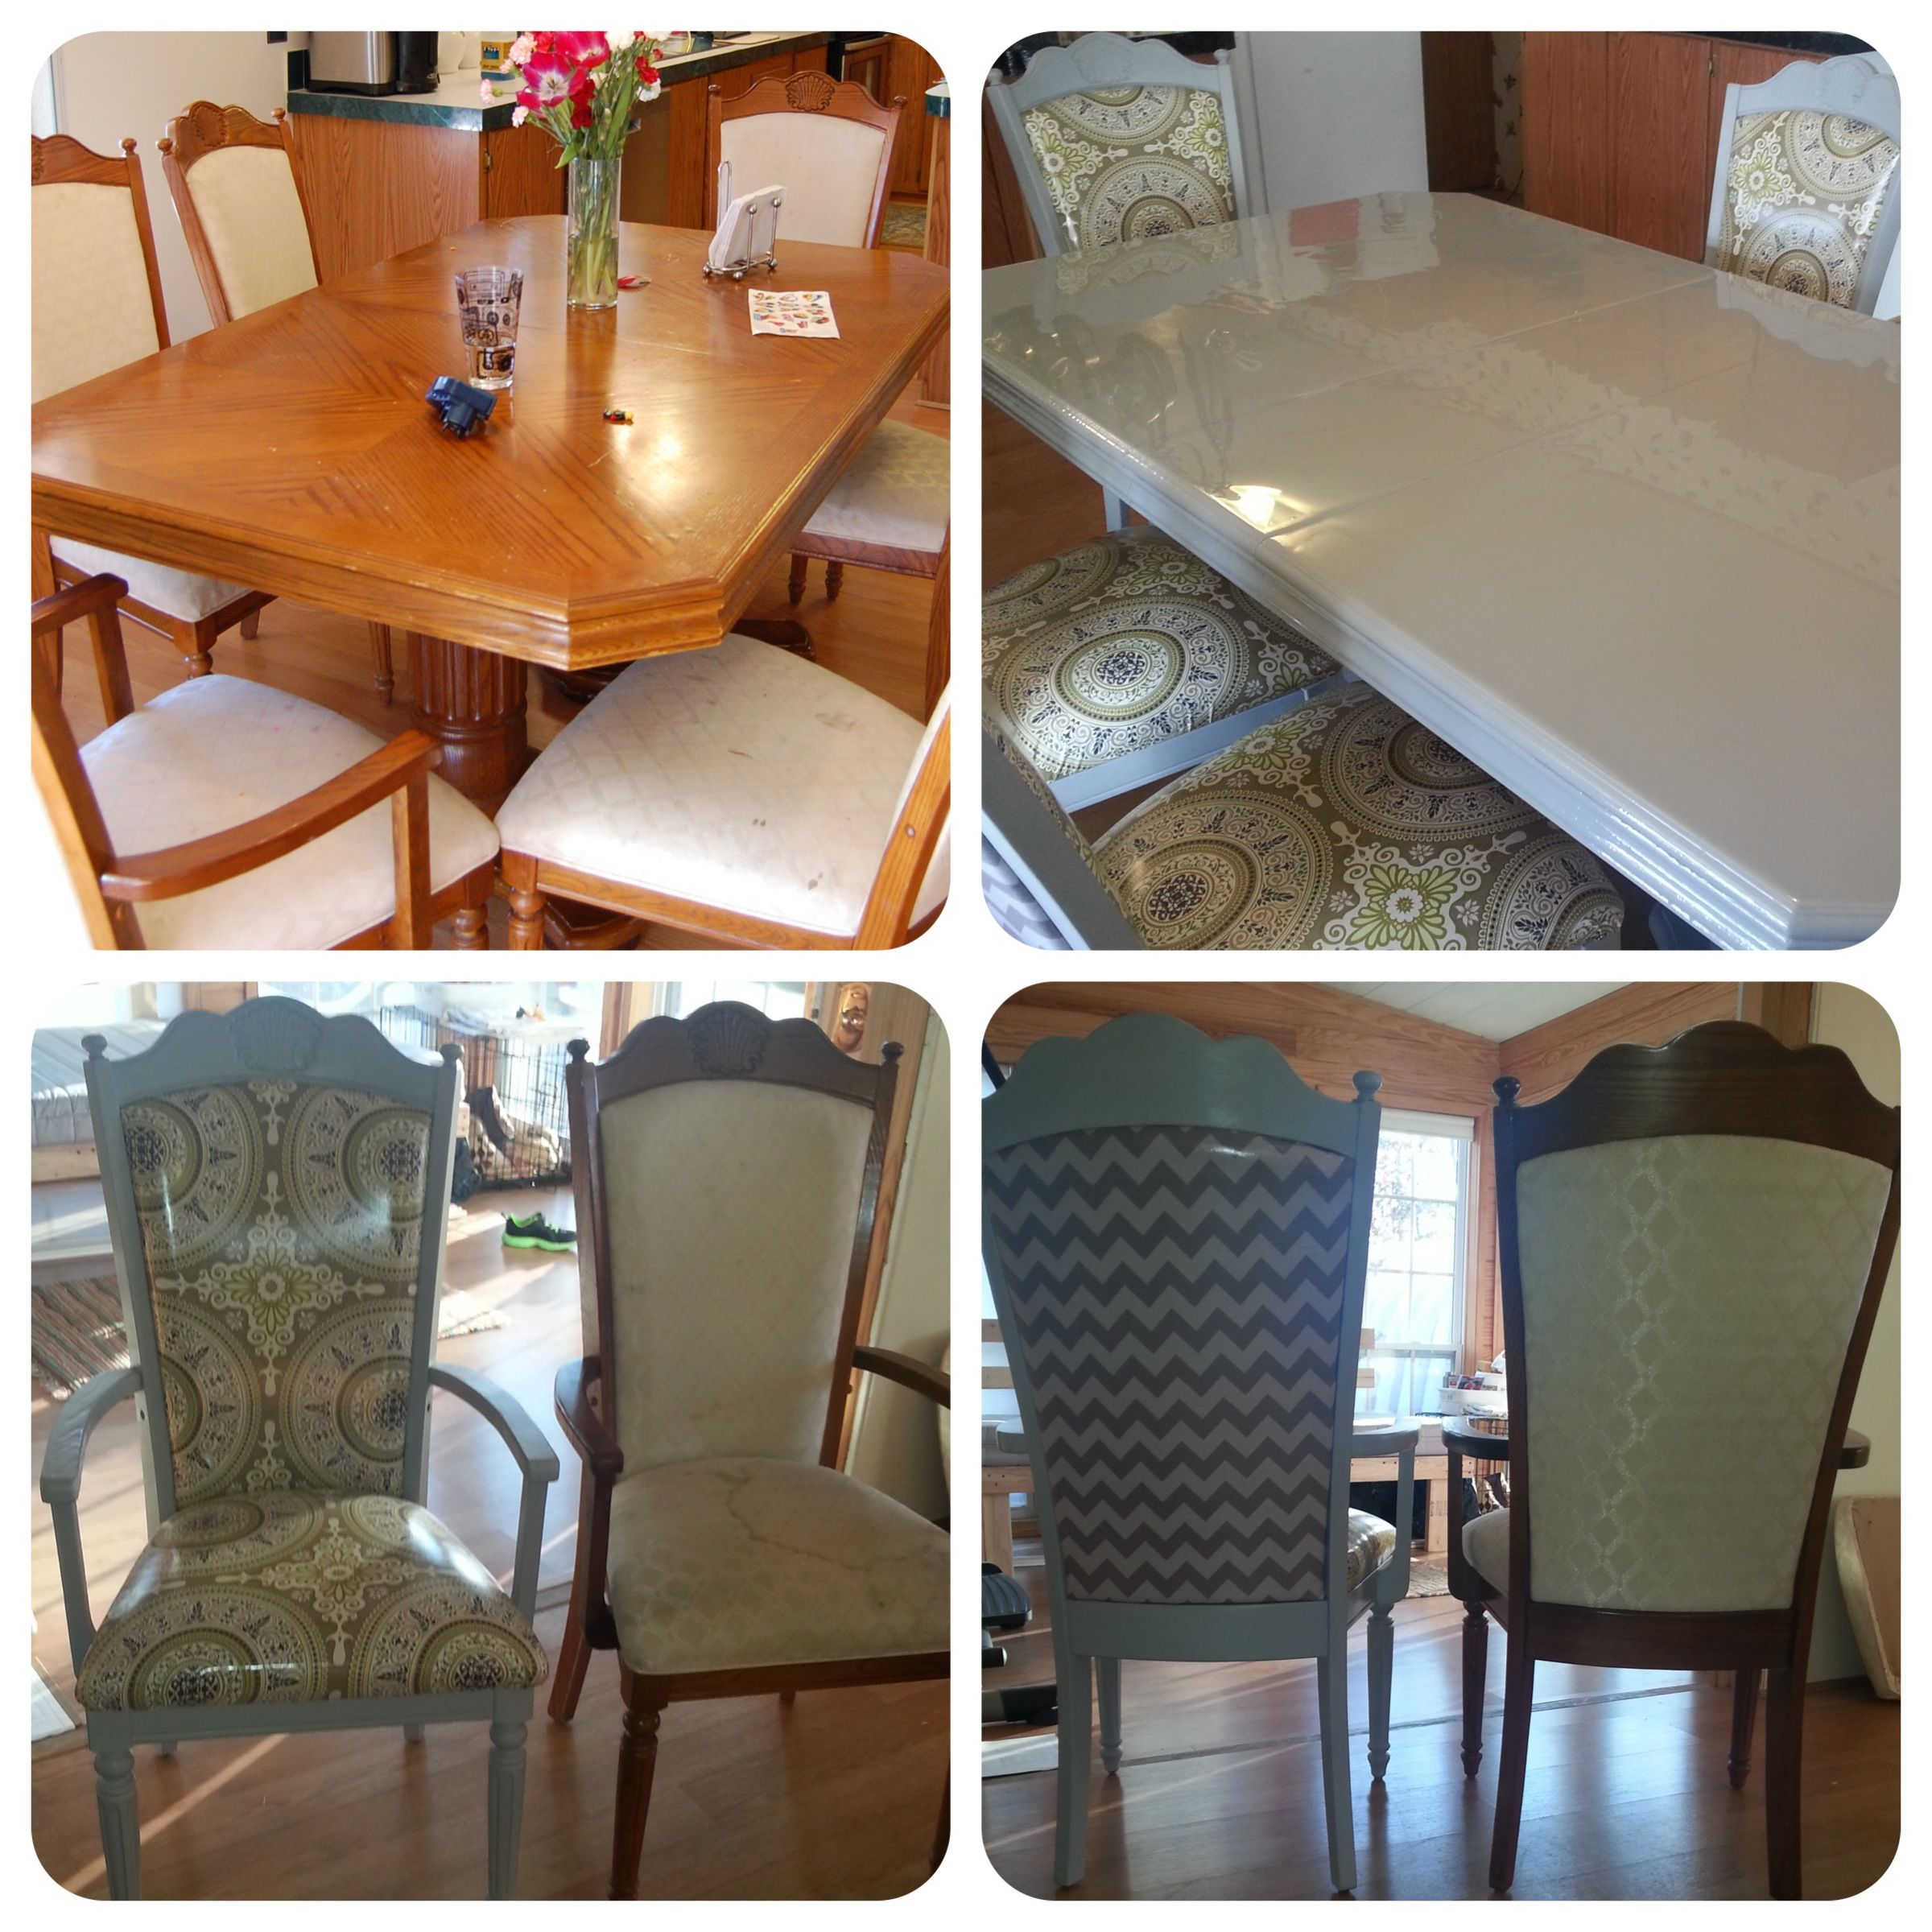 DIY Ugly Dining Table Refinish And Reupholster I Refinished This Set Of Tables Chairs